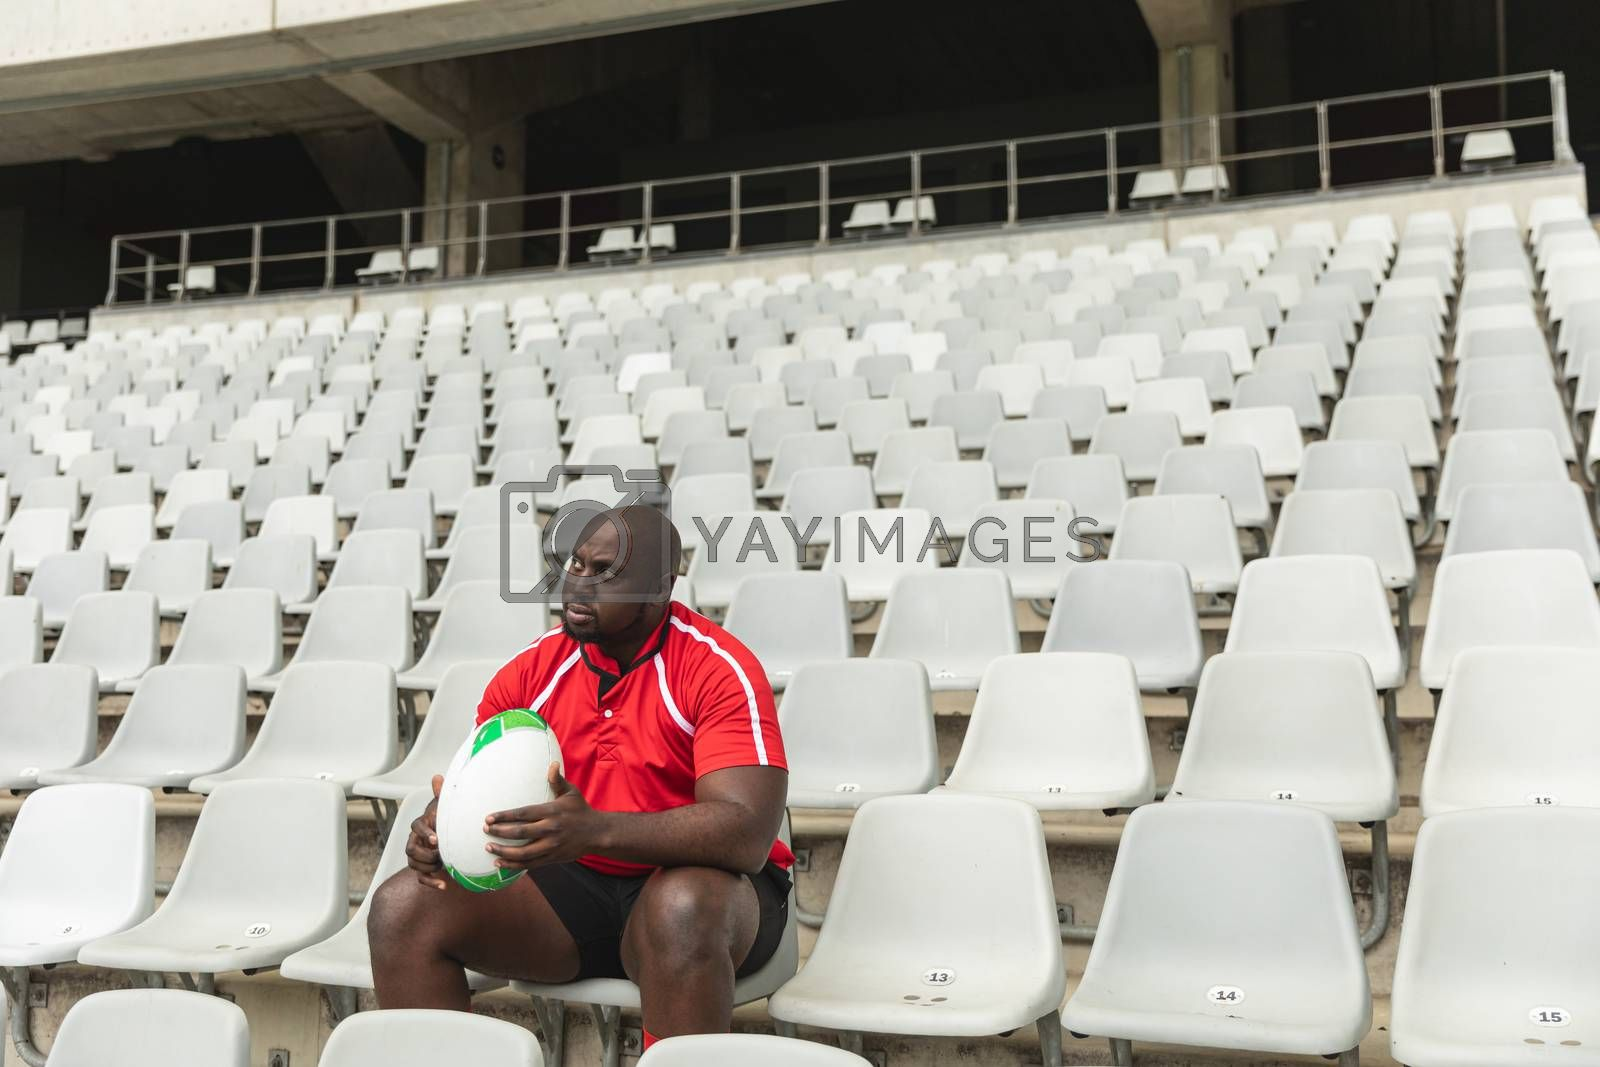 Side view of upset African American male rugby player sitting with rugby ball in stadium